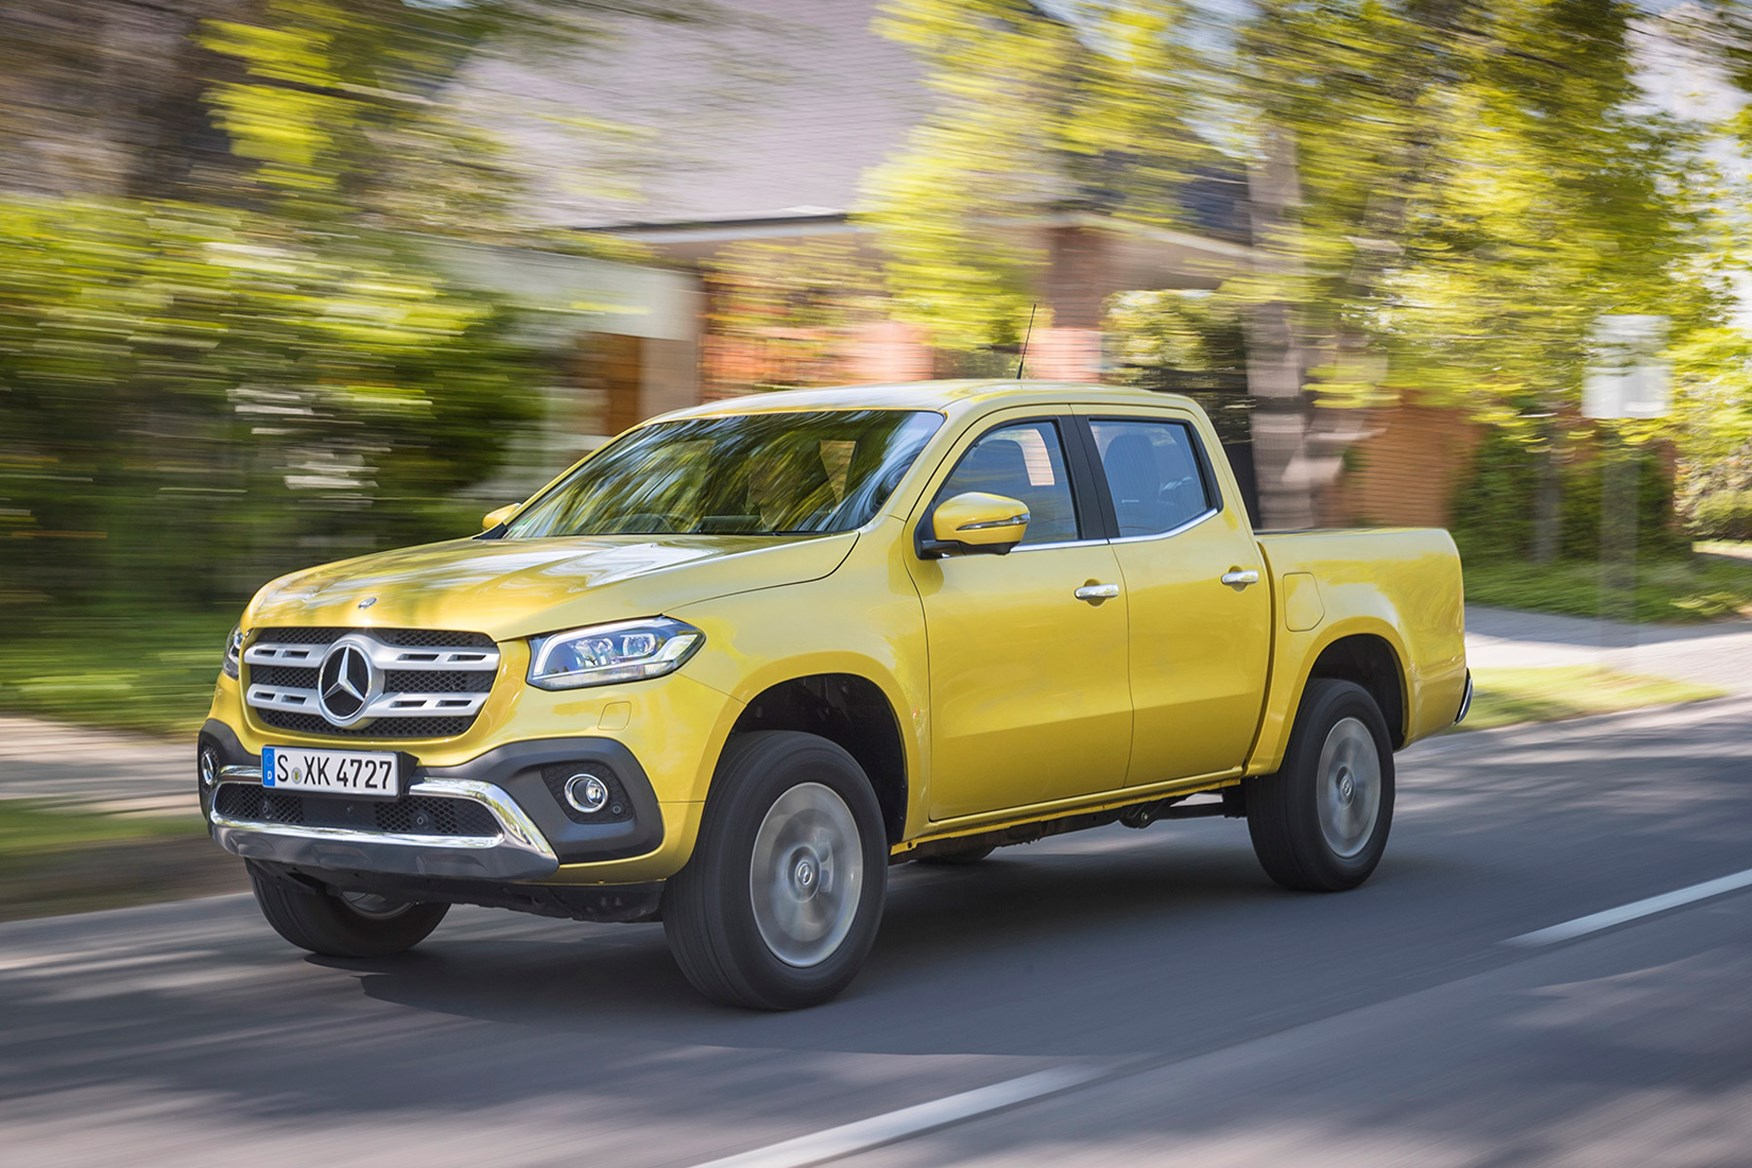 Mercedes-Benz X-Class full review on Parkers Vans - in motion